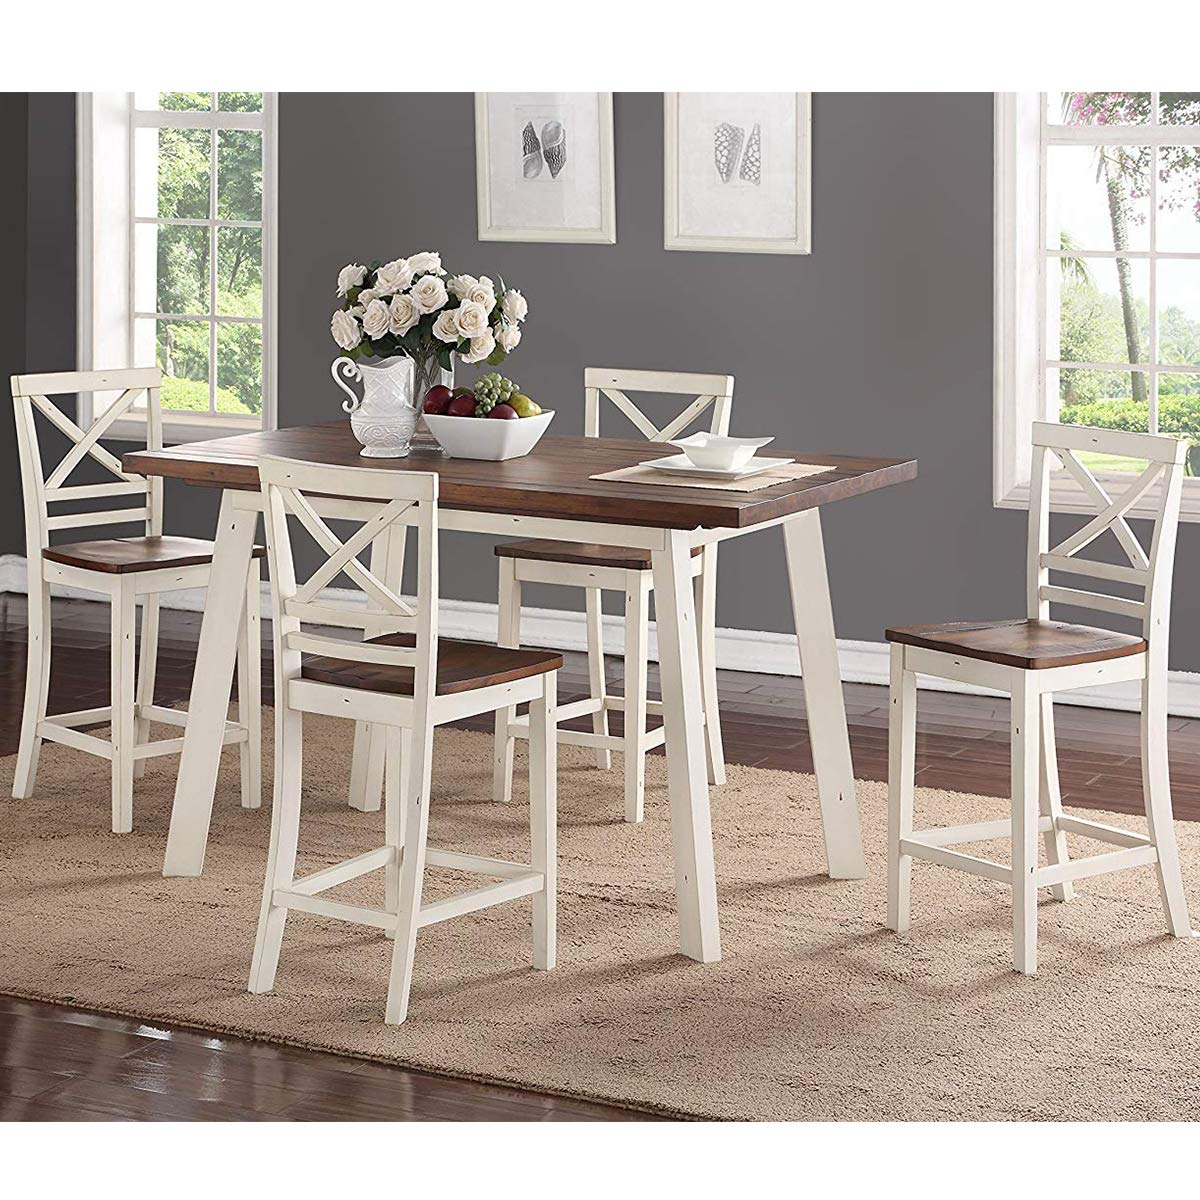 Amazon Com Standard Furniture Amelia Counter Height Dining